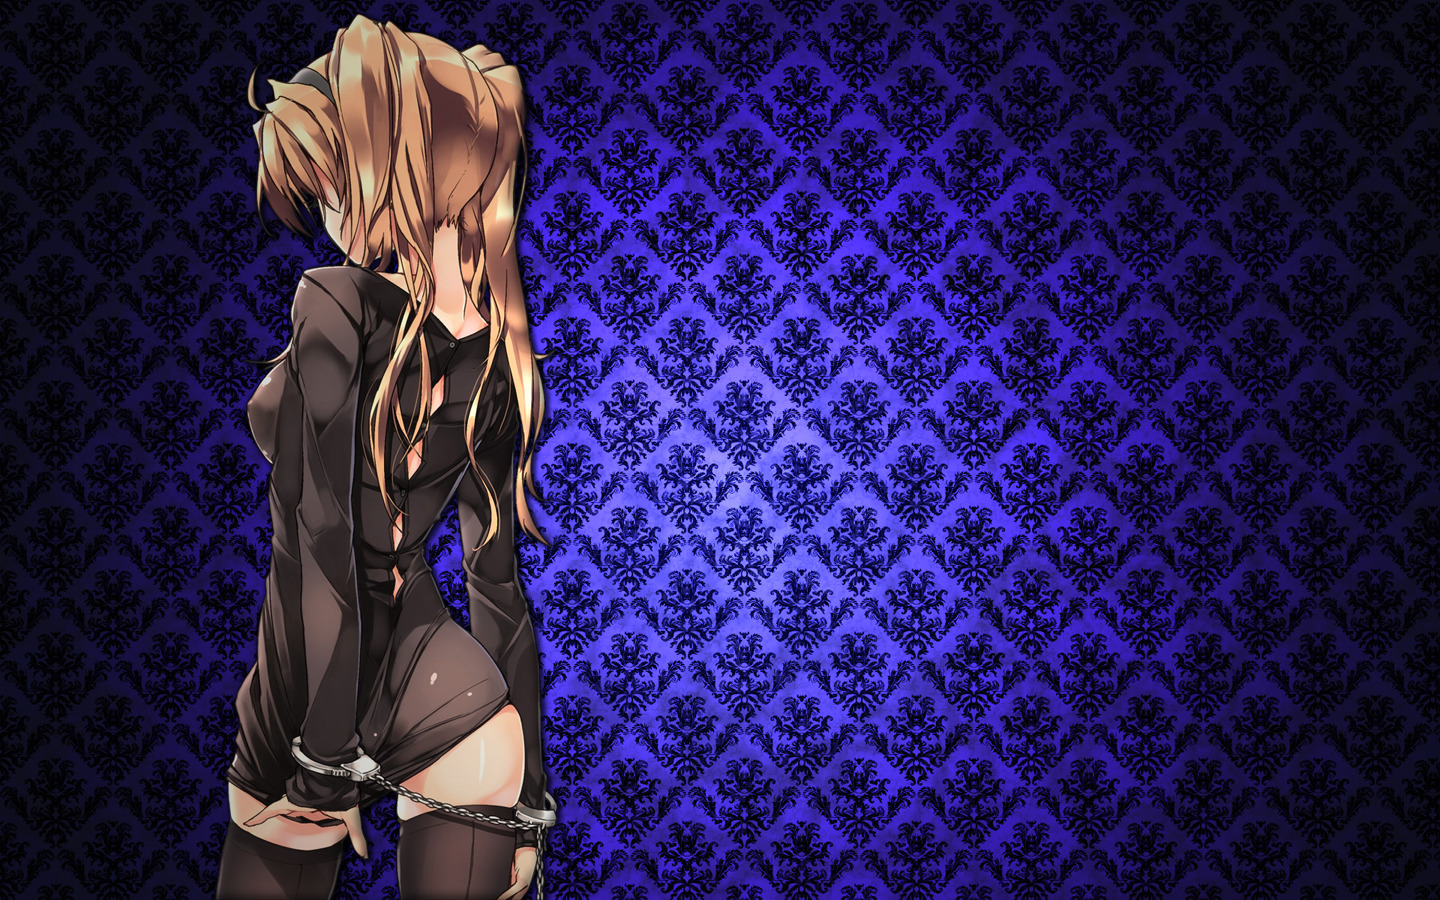 handcuffs backview Anime HD Wallpaper